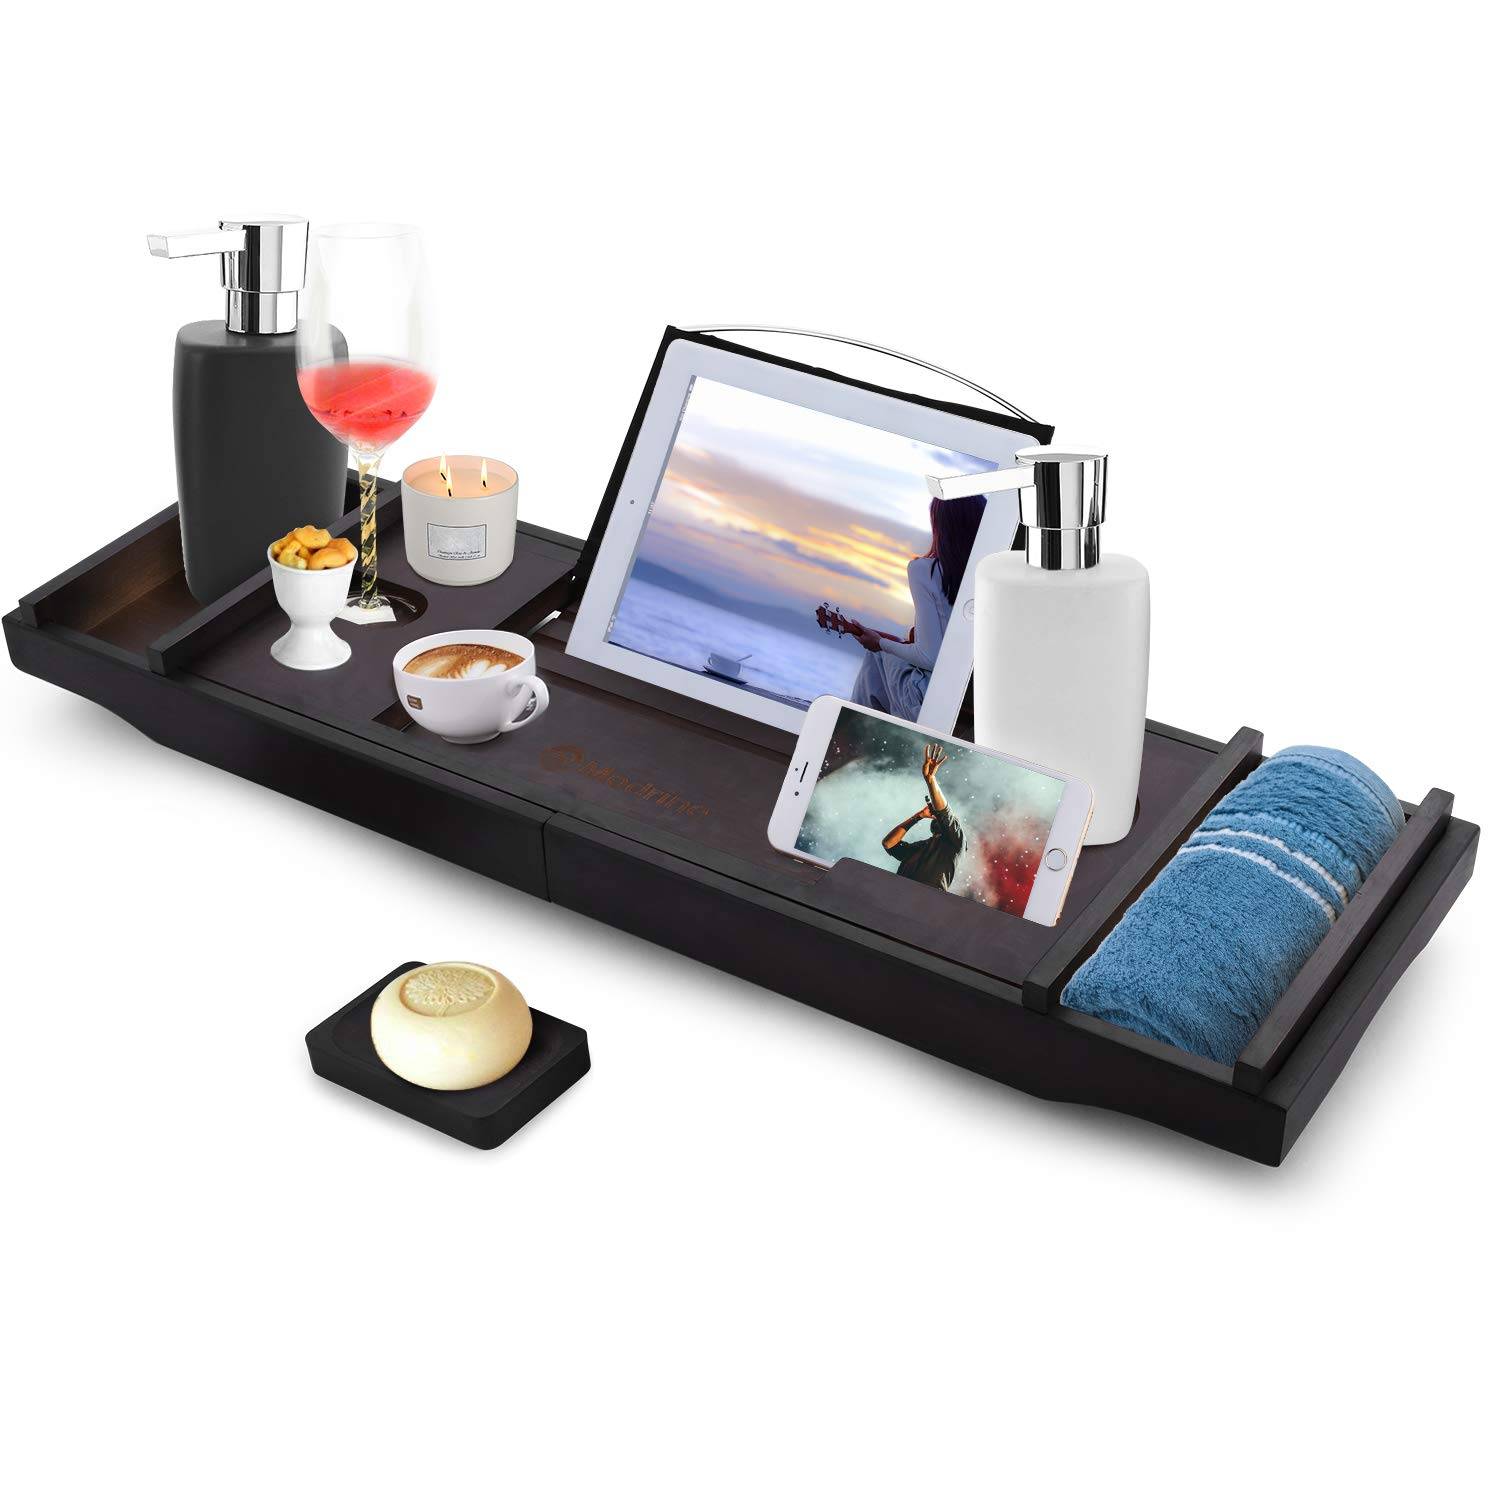 Modrine Expandable Bamboo Bathtub Caddy - Adjustable Wooden Serving Tray and Organizer for Any Size Bathtub - Phone and Tablet Compartments -Wine holder bathtub tray Brown